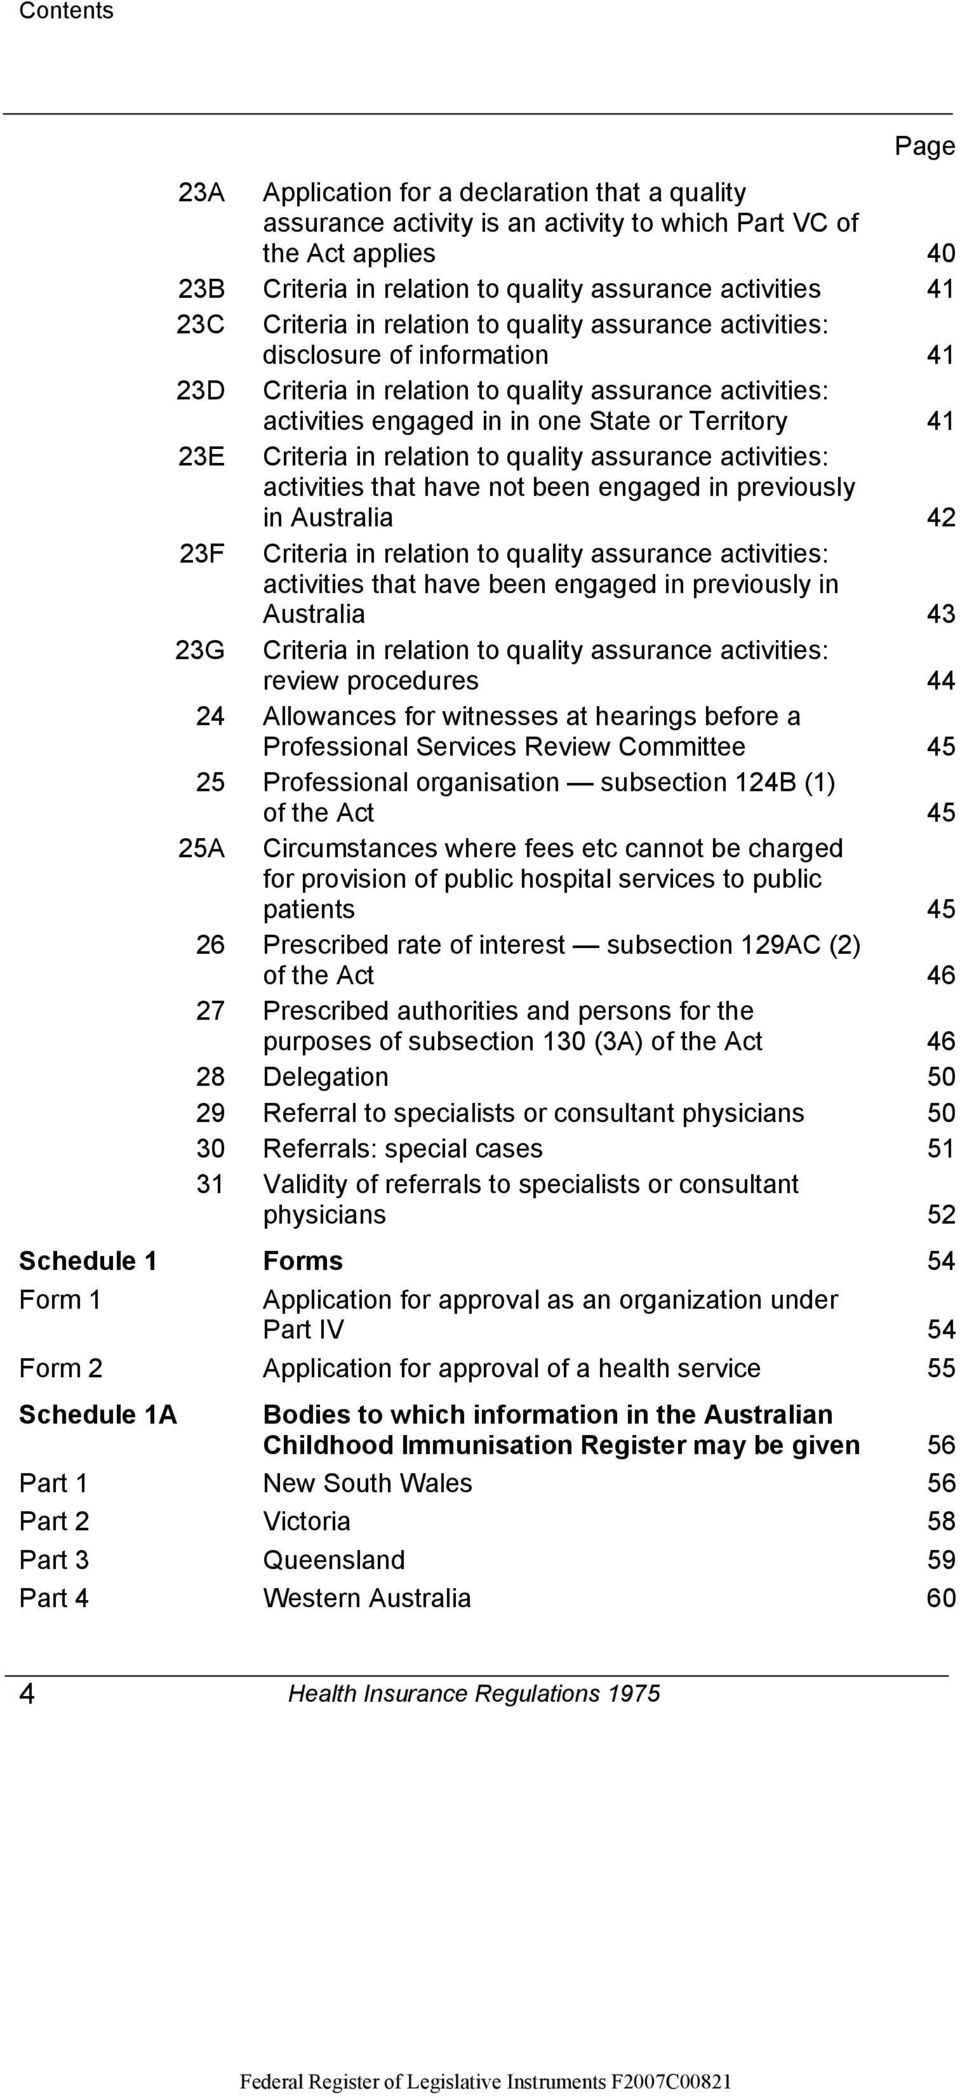 Criteria in relation to quality assurance activities: activities that have not been engaged in previously in Australia 42 23F Criteria in relation to quality assurance activities: activities that